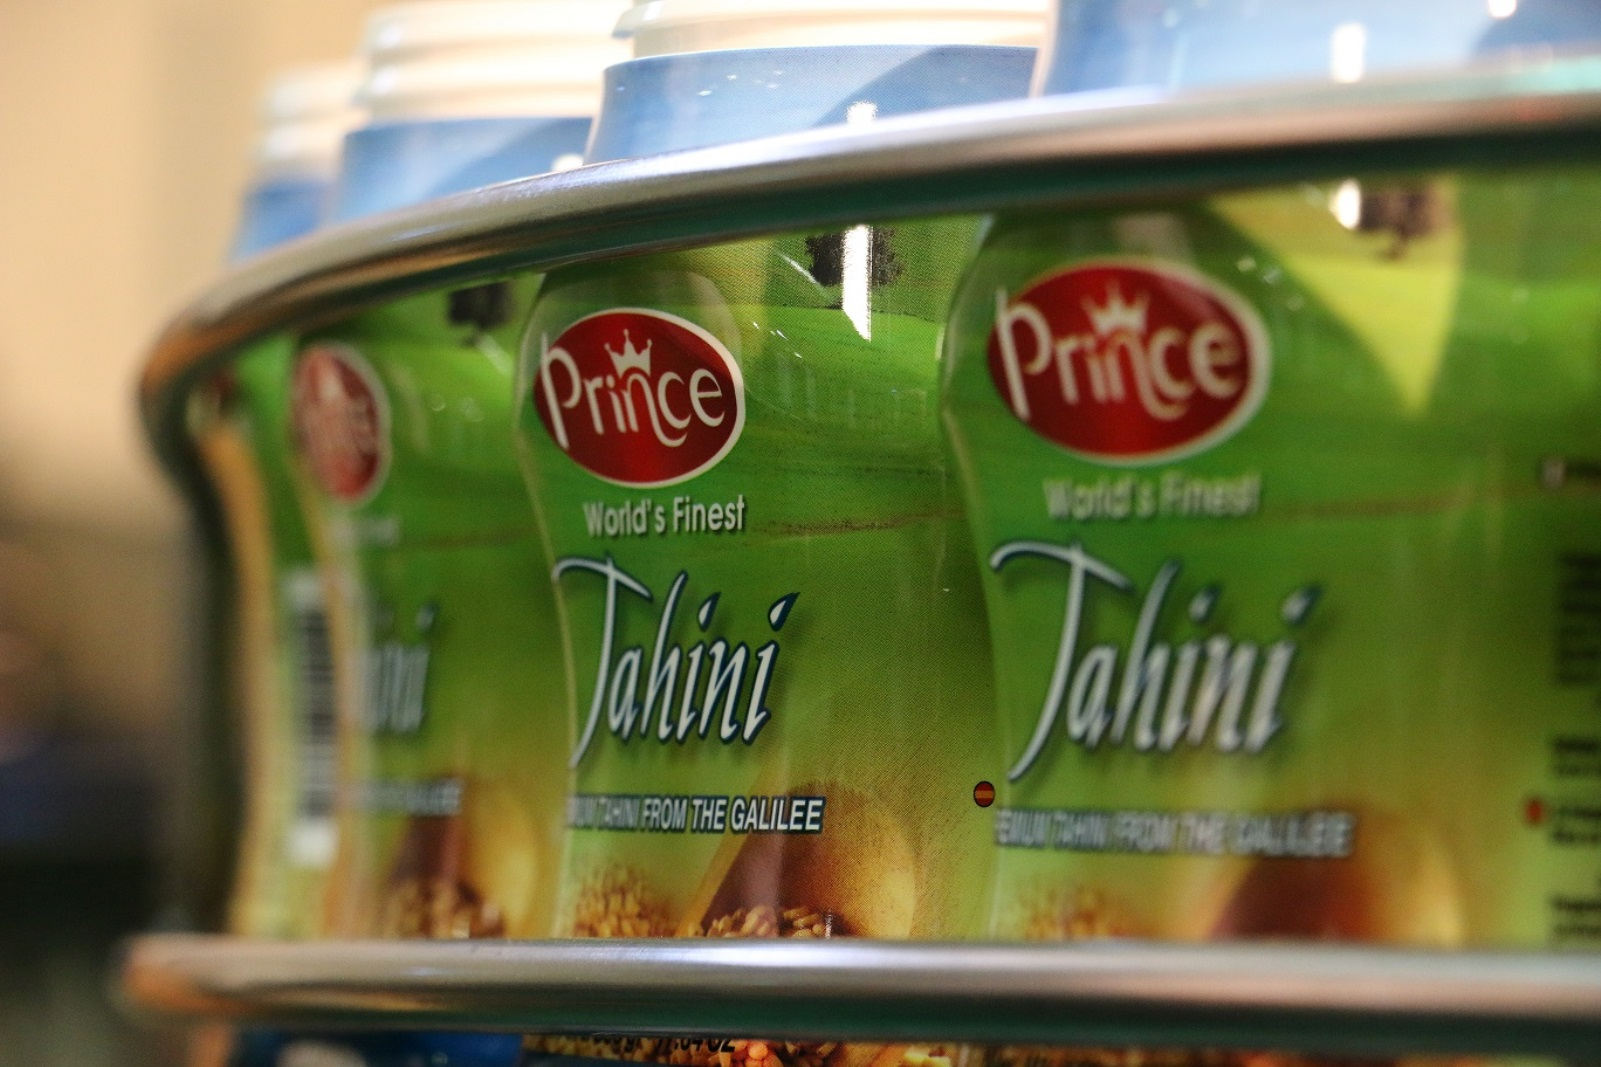 Prince Tahini on the assembly line. Photo: courtesy